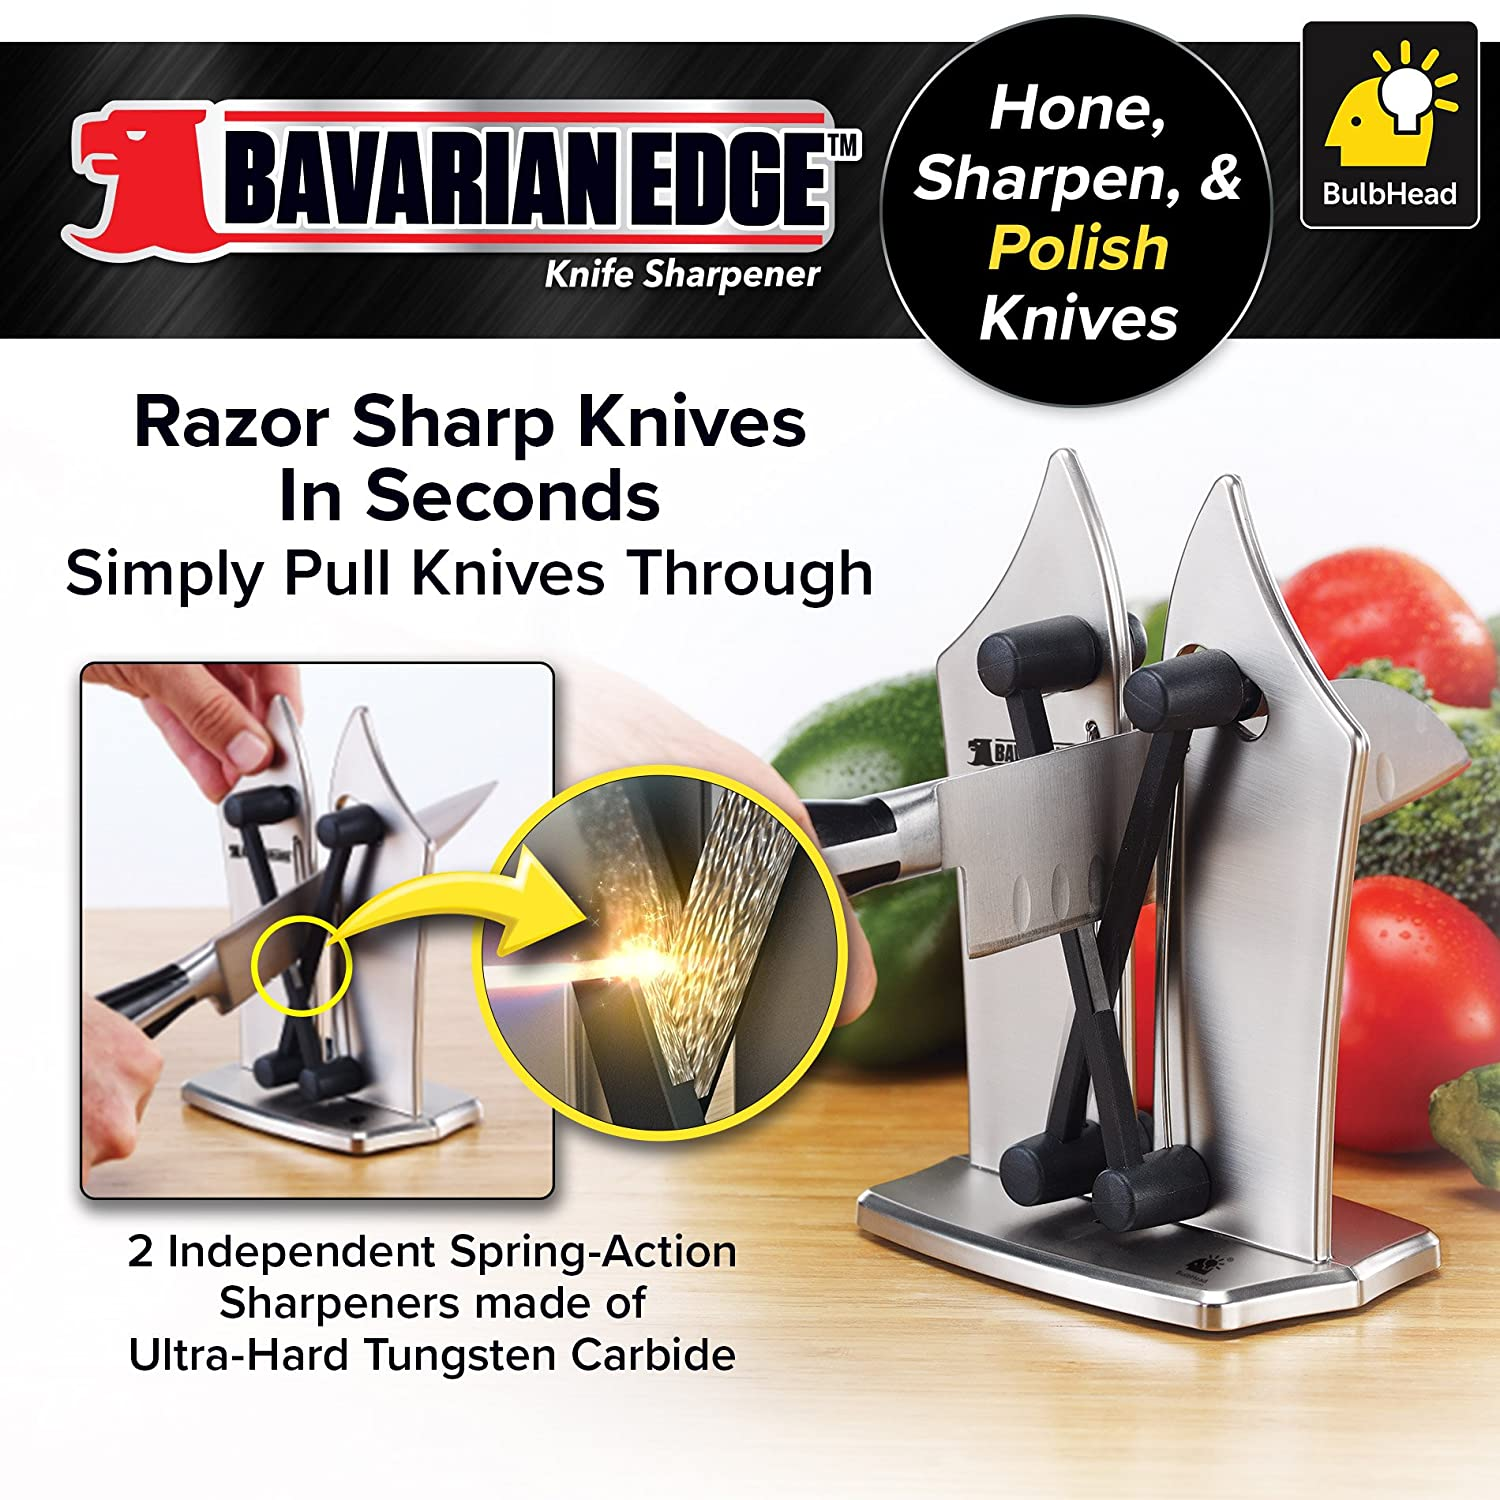 Best Knife Sharpener Reviews 2019: Top 5+ Recommended 6 #cookymom